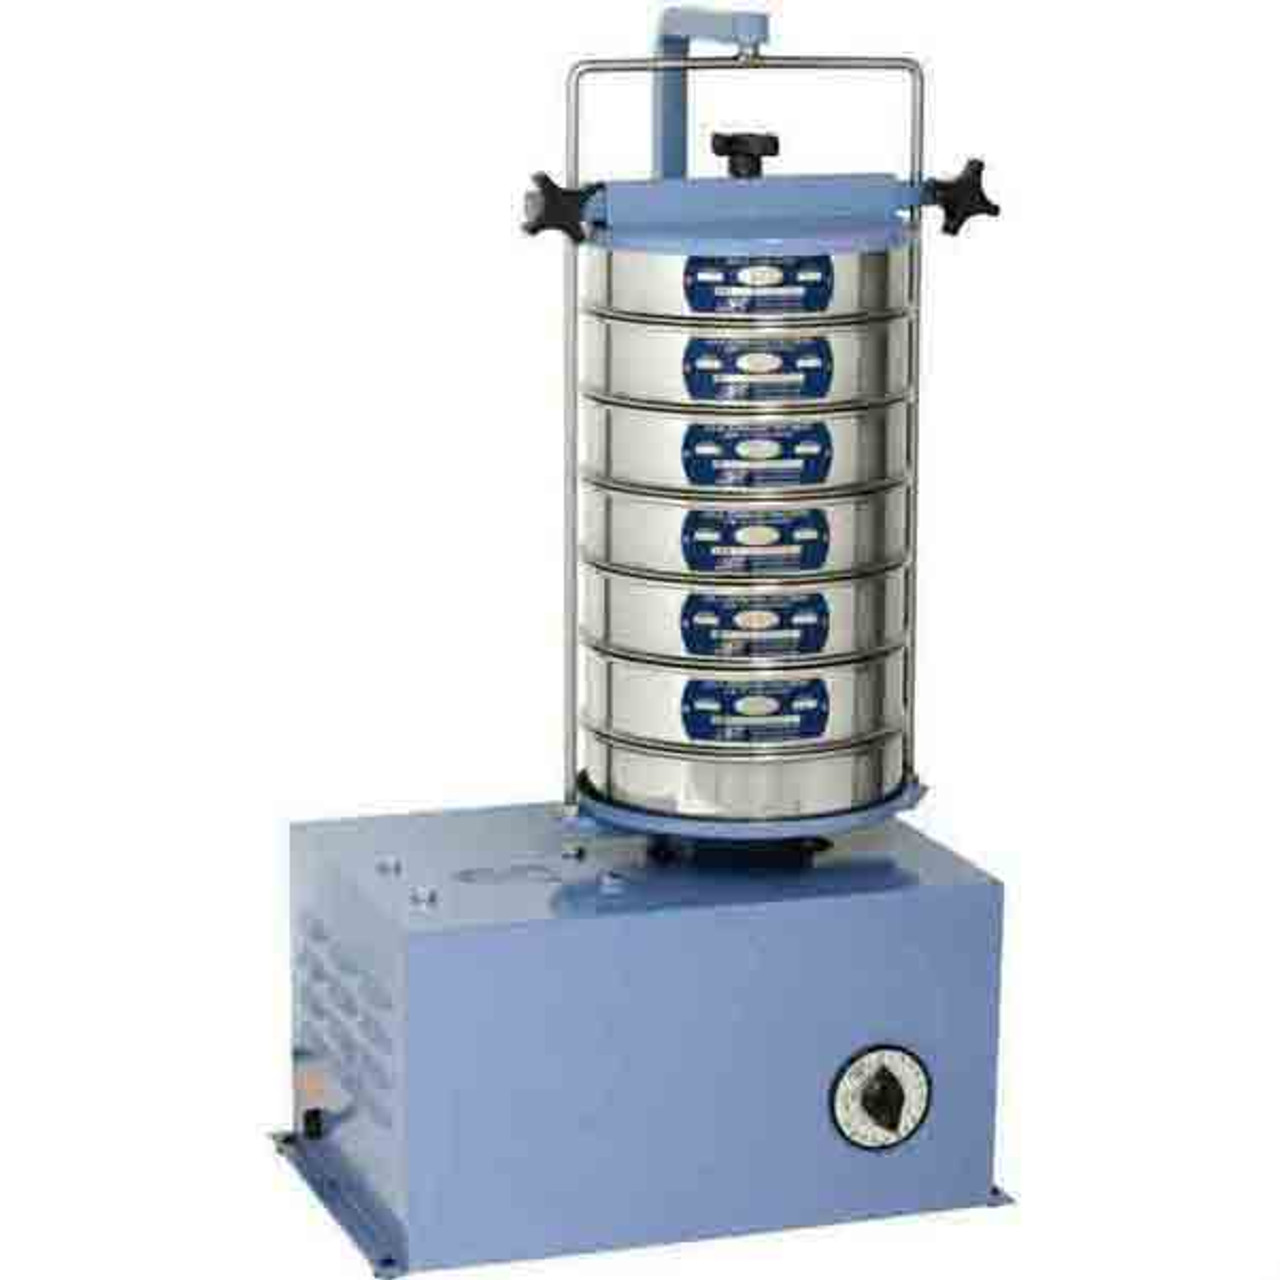 economy 8 sieve shaker for sale certified material testing products rh certifiedmtp com